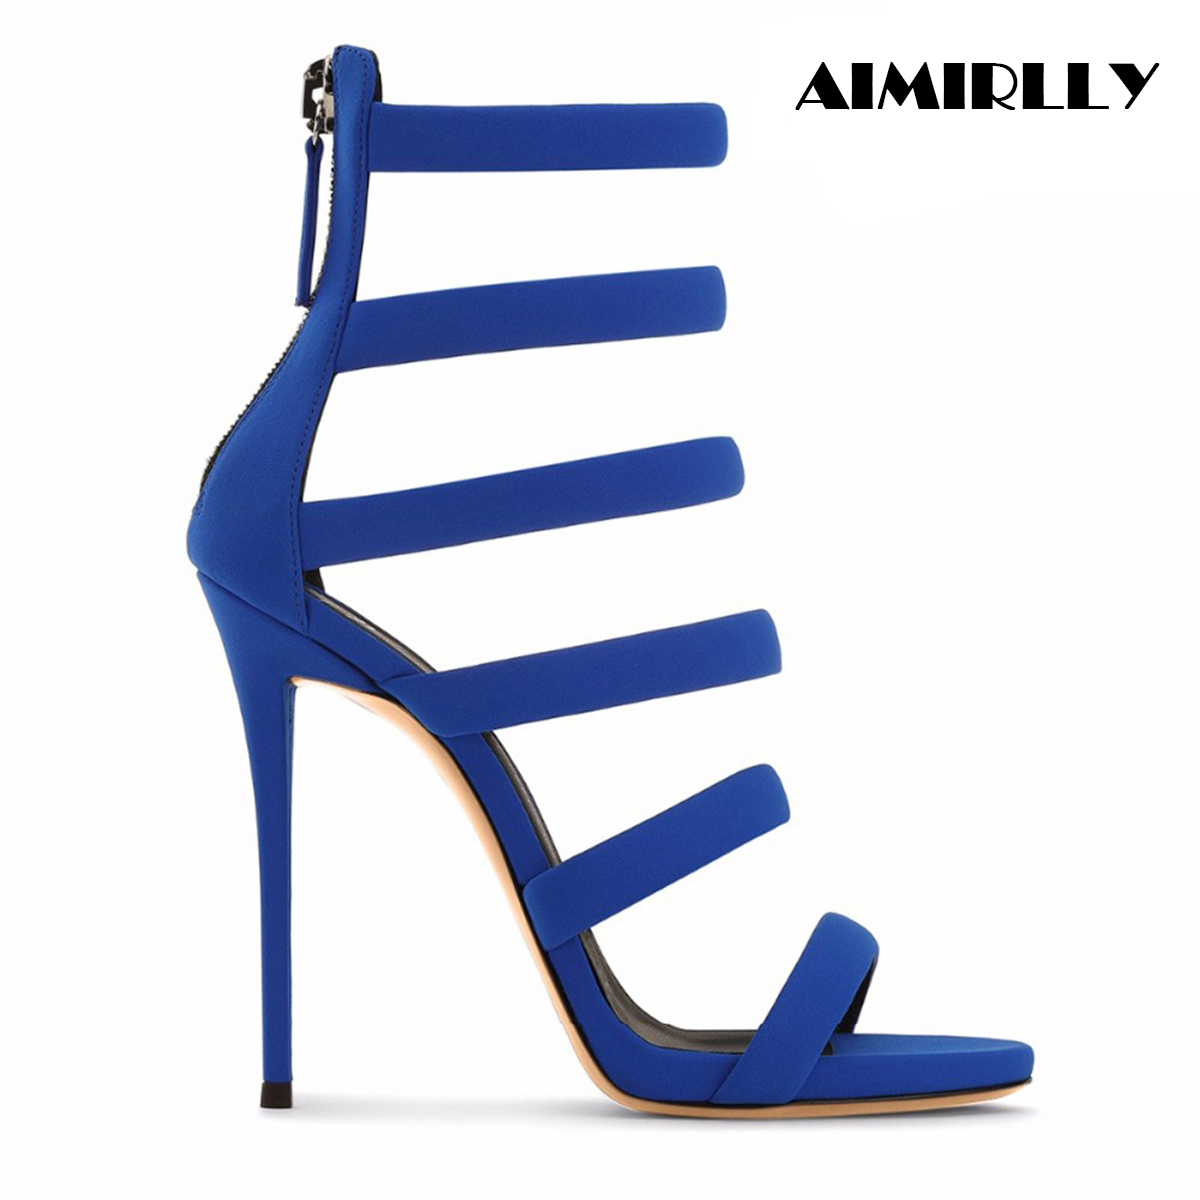 Aimirlly Summer Women Open Toe High Heels Sandals Blue Strappy Back Zipper Cover Heels Ladies Party